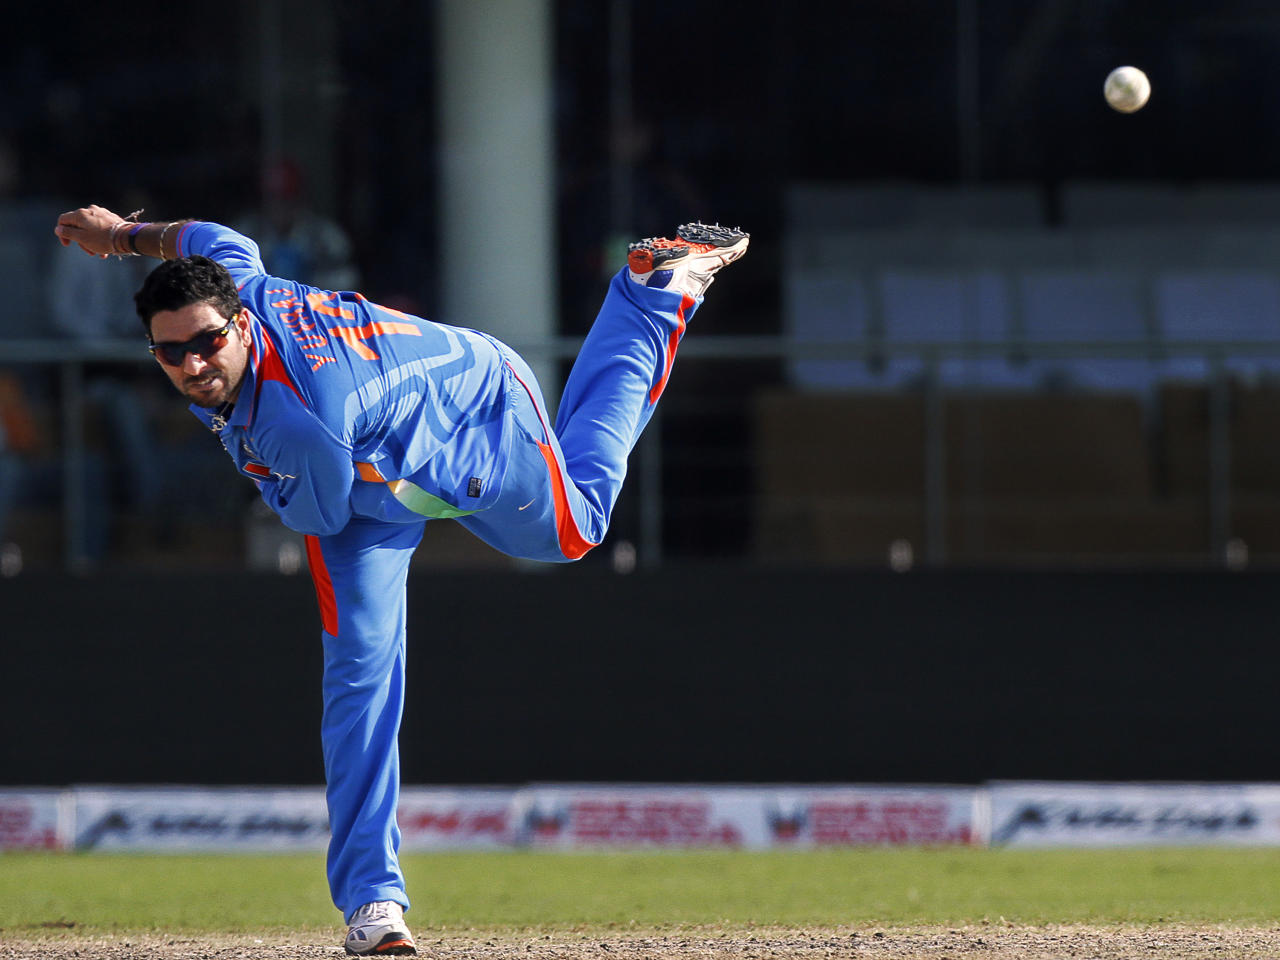 Indian Yuvraj Singh bowls during the Group B Cricket World Cup match between India and Netherlands in New Delhi, India, Wednesday, March 9, 2011.